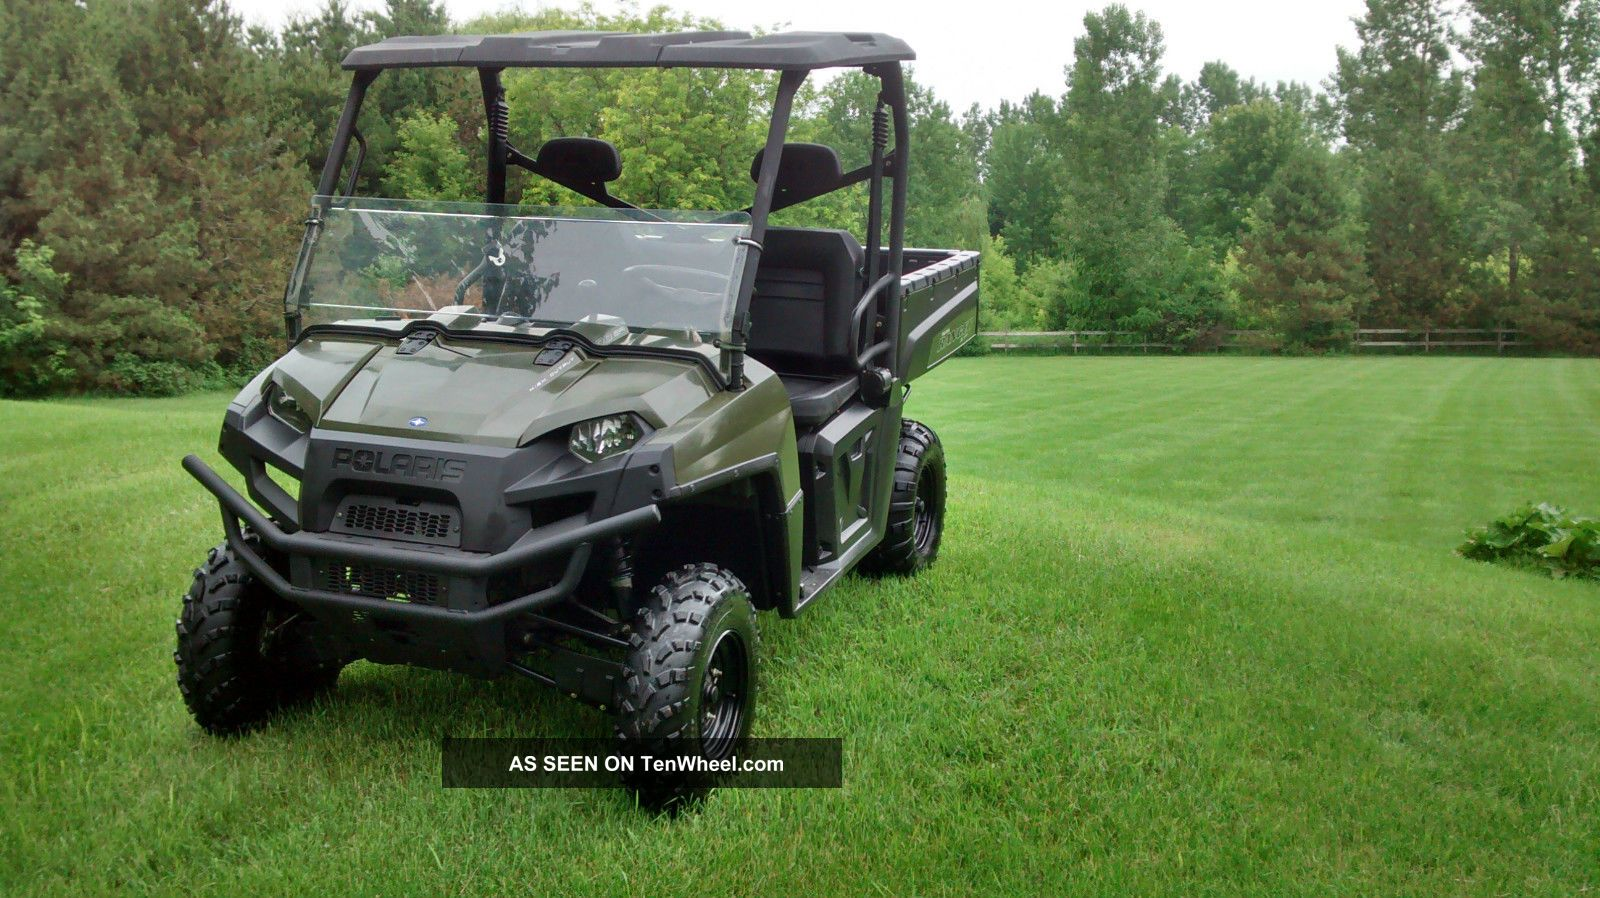 2012 Polaris Ranger UTVs photo